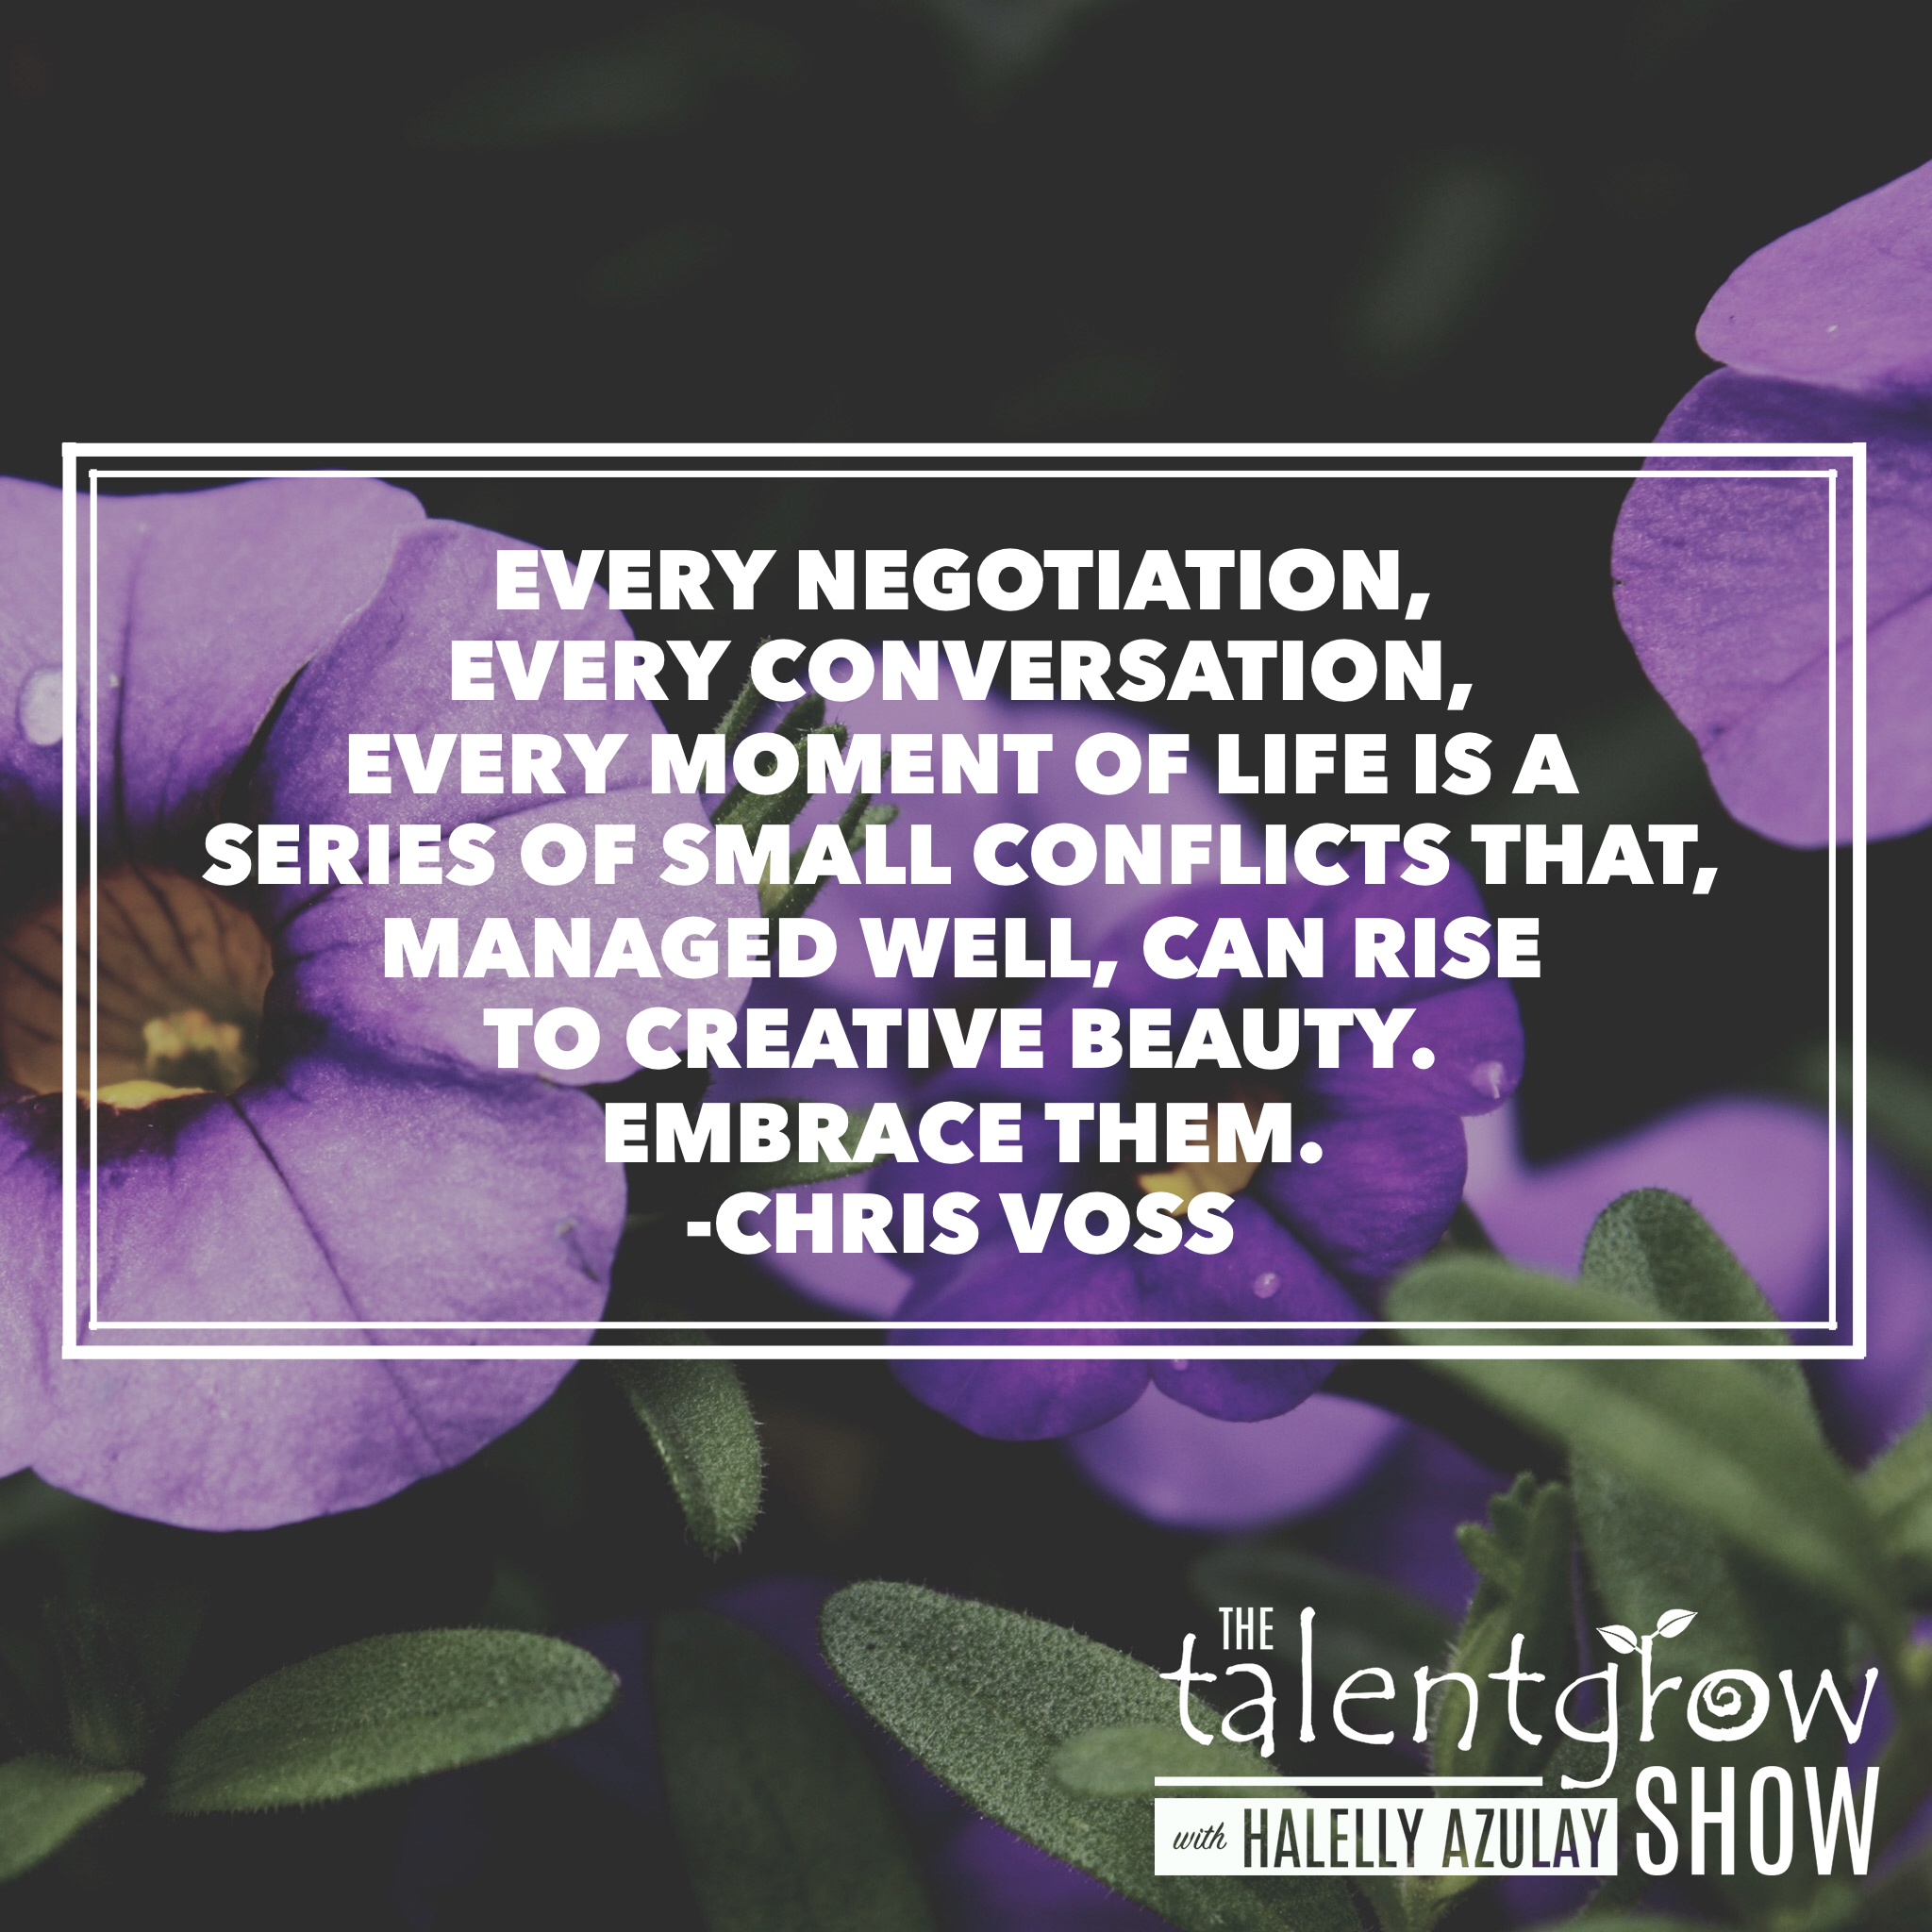 Negotiation tip from Chris Voss on the TalentGrow Show podcast with Halelly Azulay